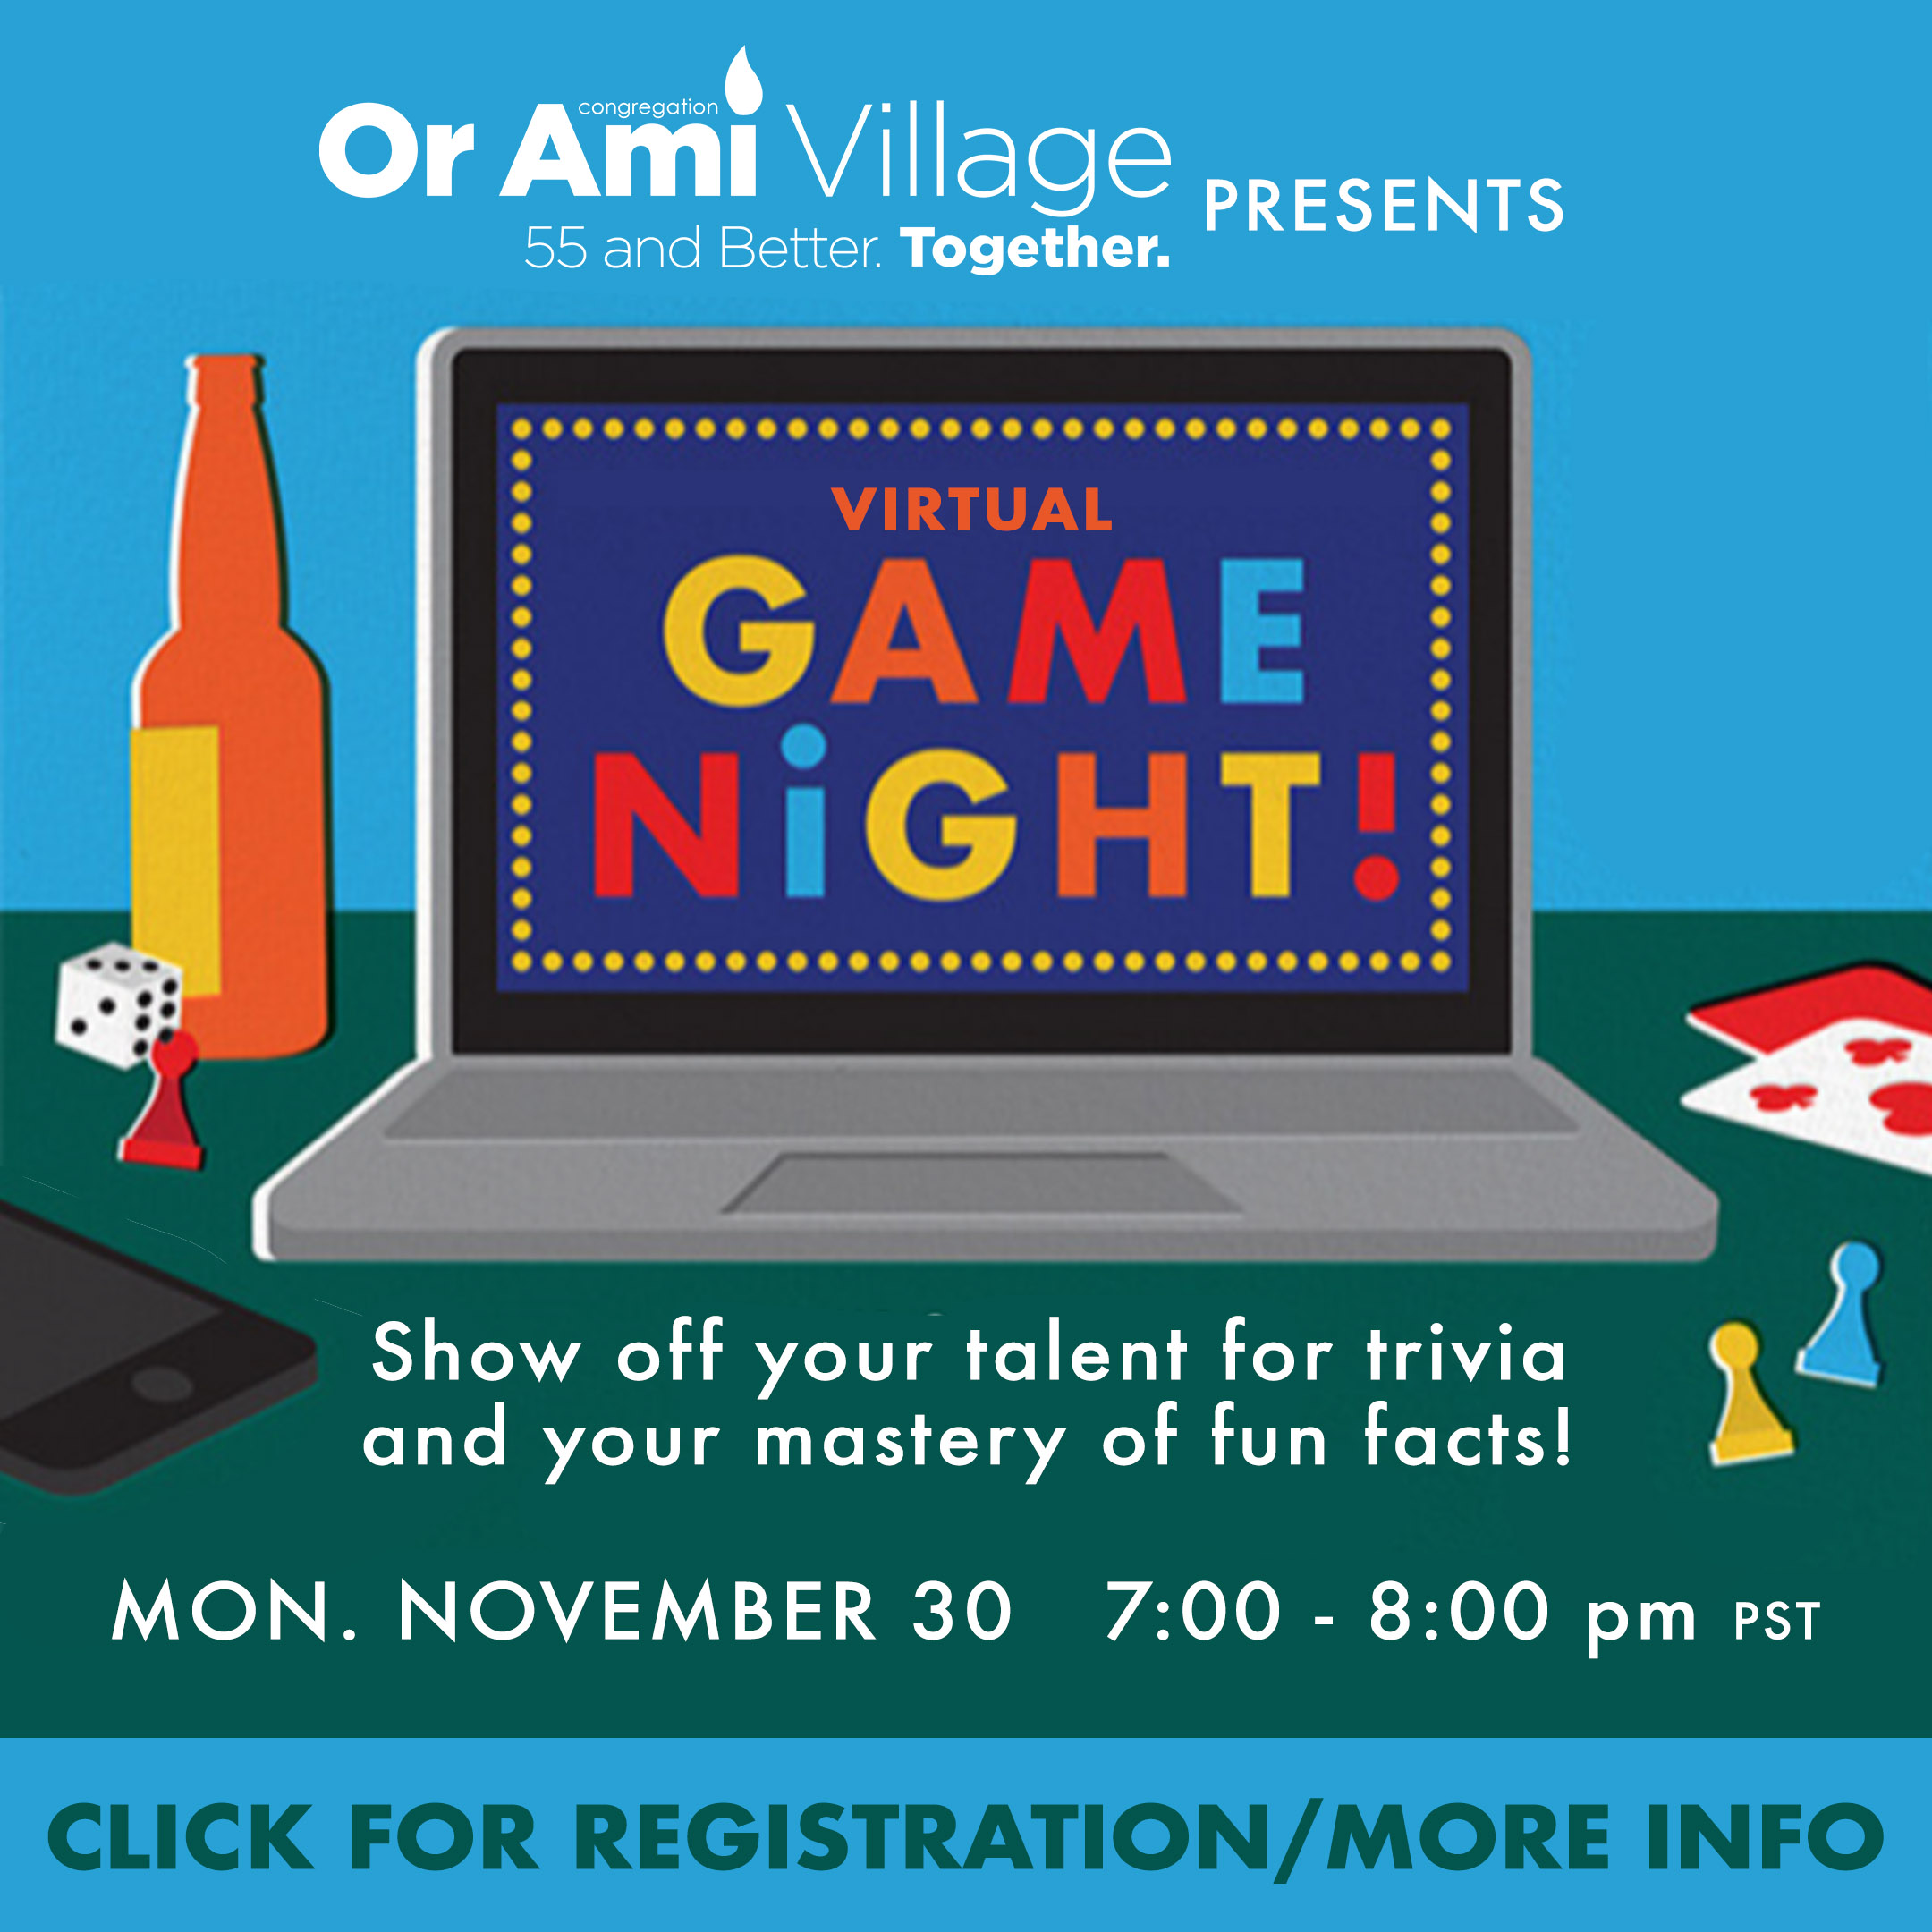 game night with village WITH CLICK